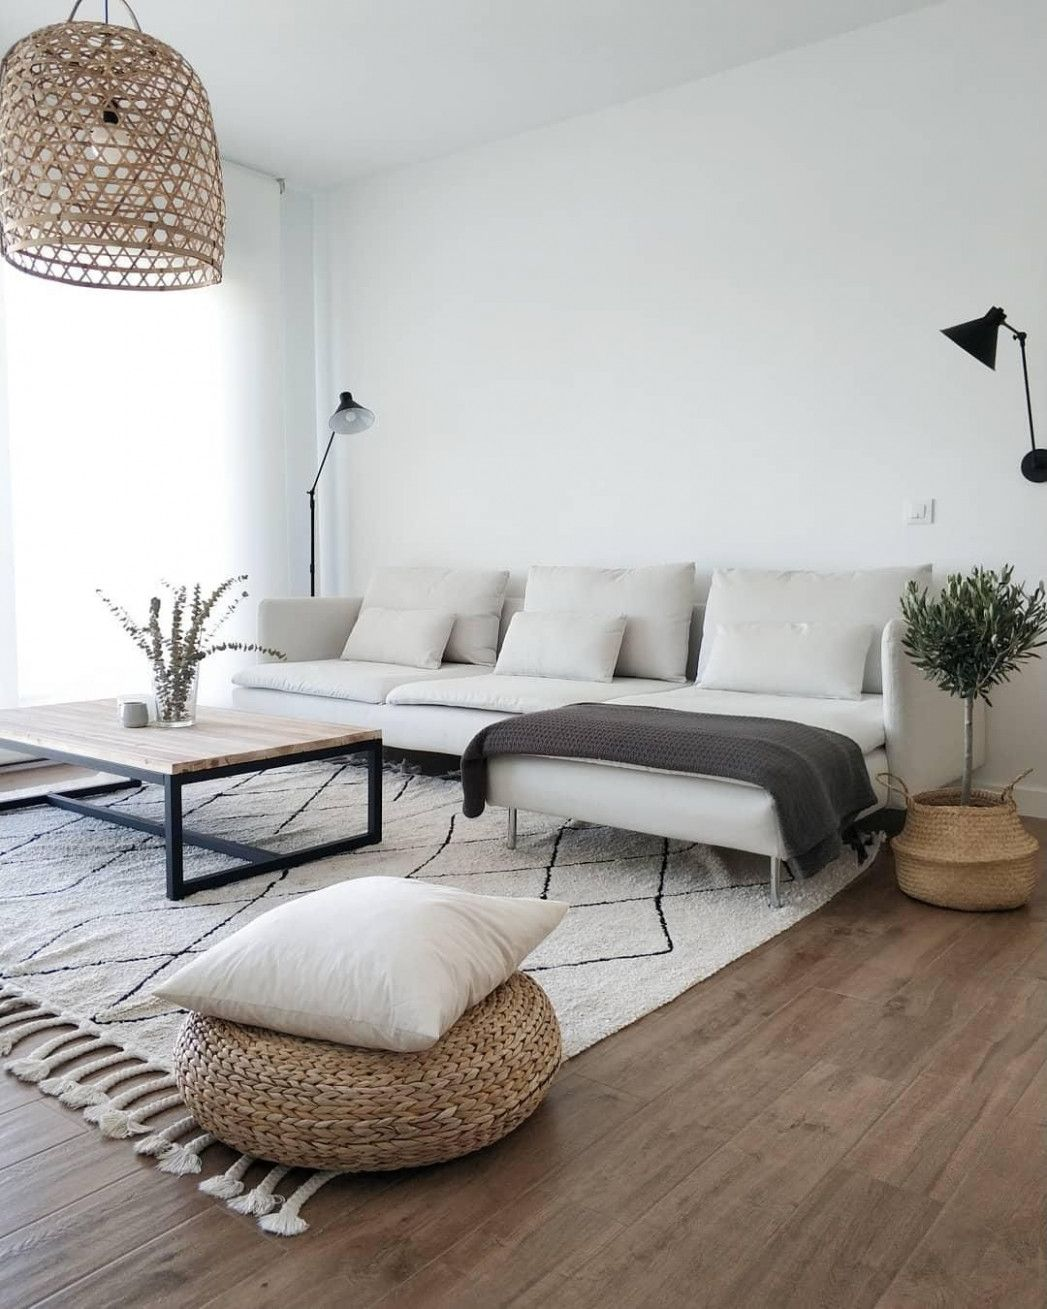 4 Wohnzimmer Design On-line in 4  Innenarchitektur